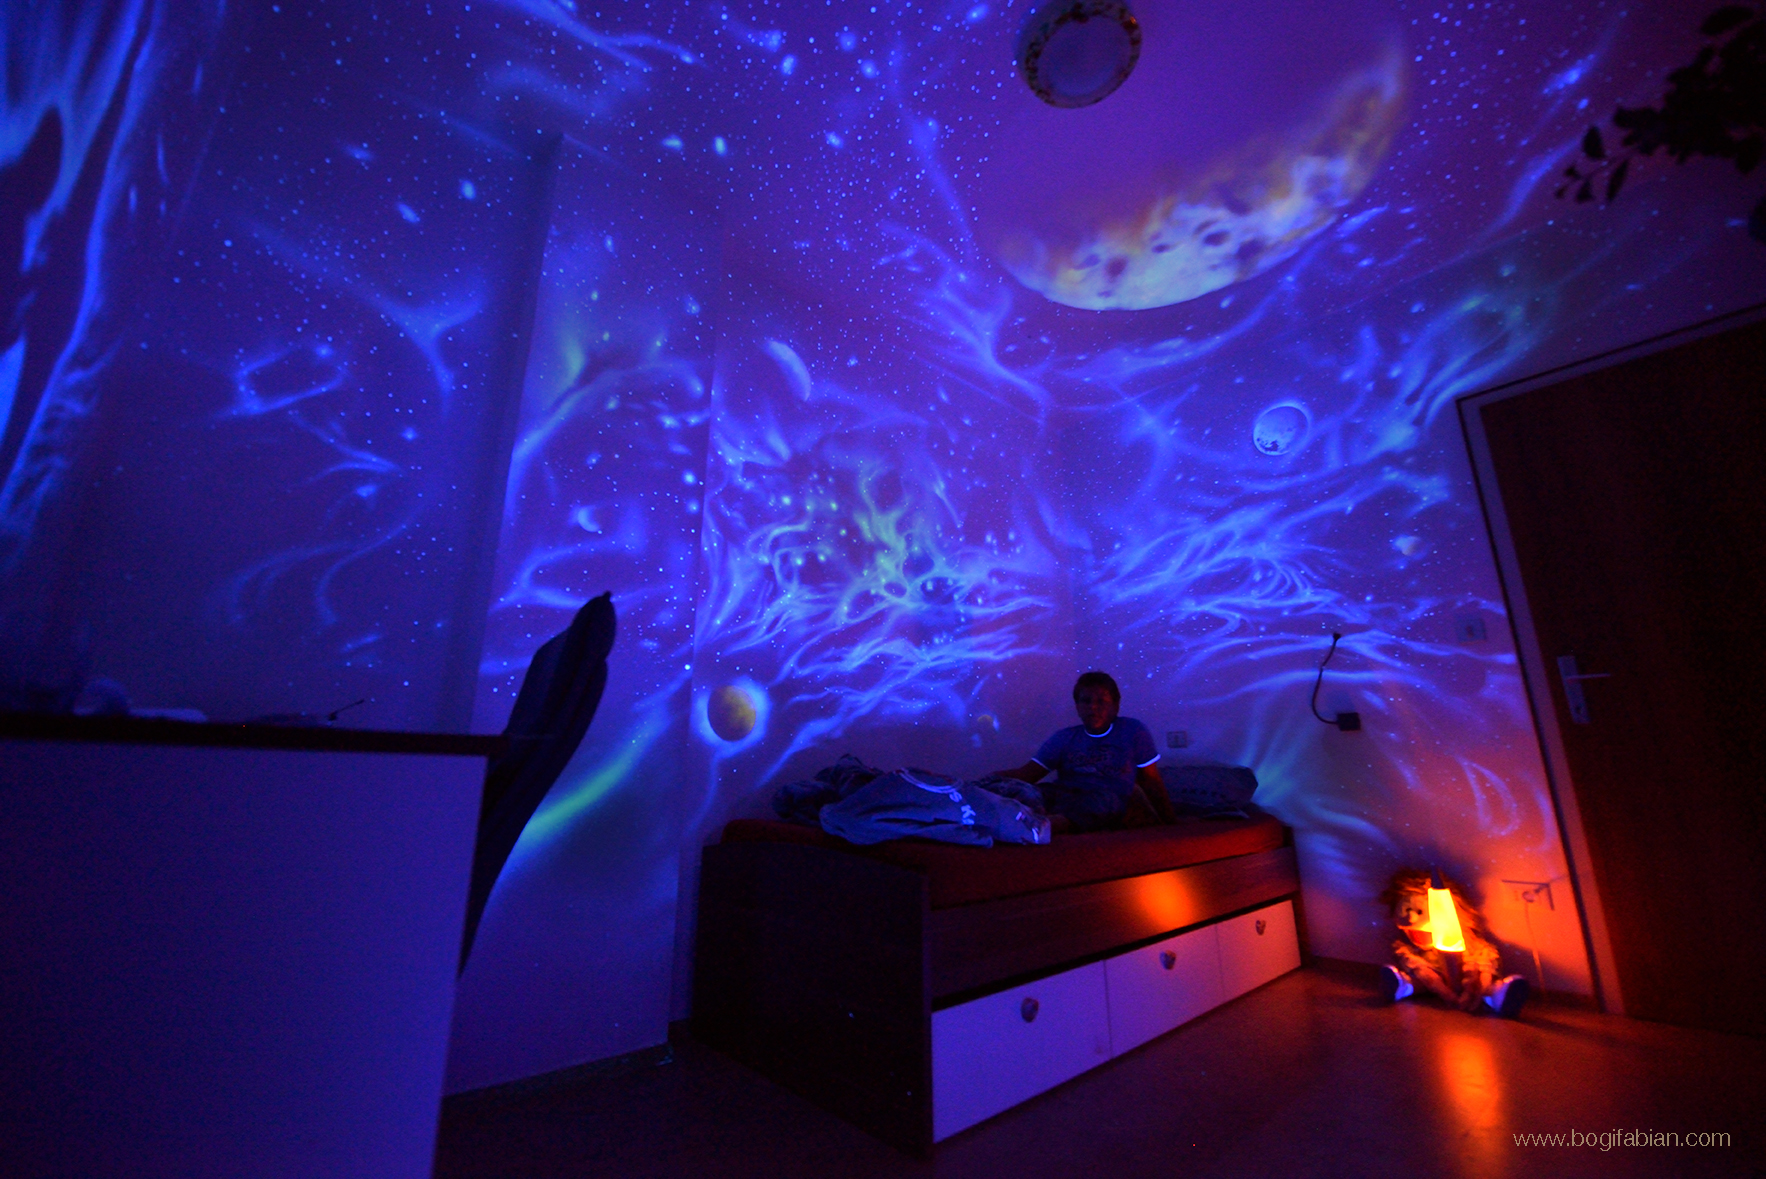 GLOWING GALAXY MURALS - CONNECTING YOU TO THE  COSMOS